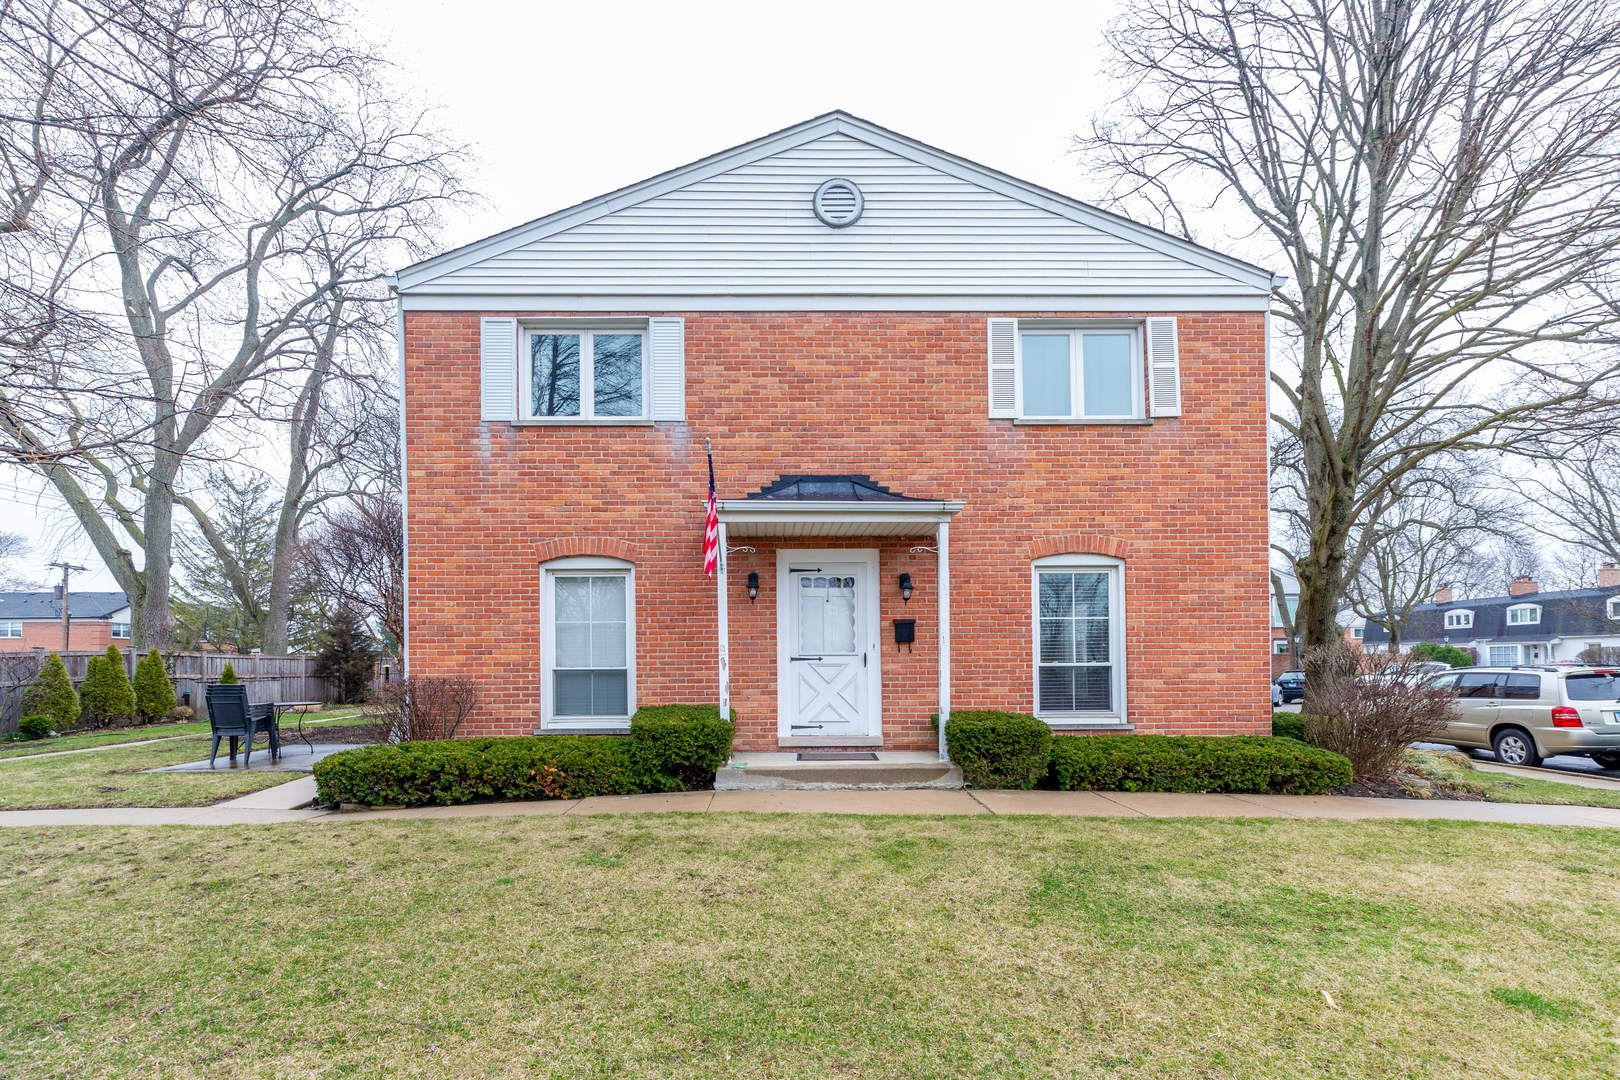 498 Old Surrey Road, Hinsdale, IL 60521 - #: 10659836